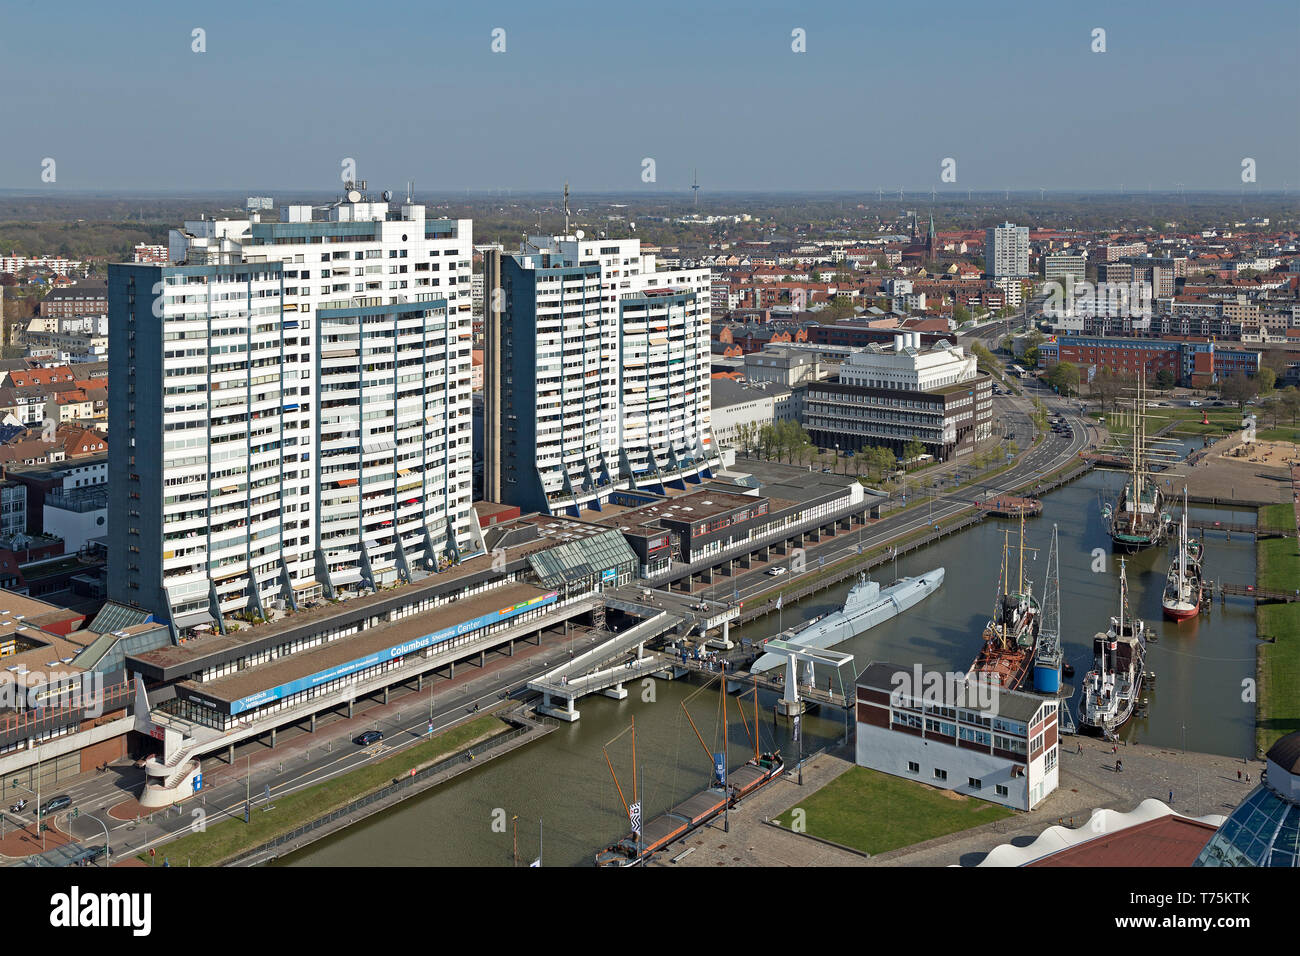 view of Columbus Center and Old Harbour from the viewing platform of ATLANTIC Hotel Sail City, Bremerhaven, Bremen, Germany - Stock Image